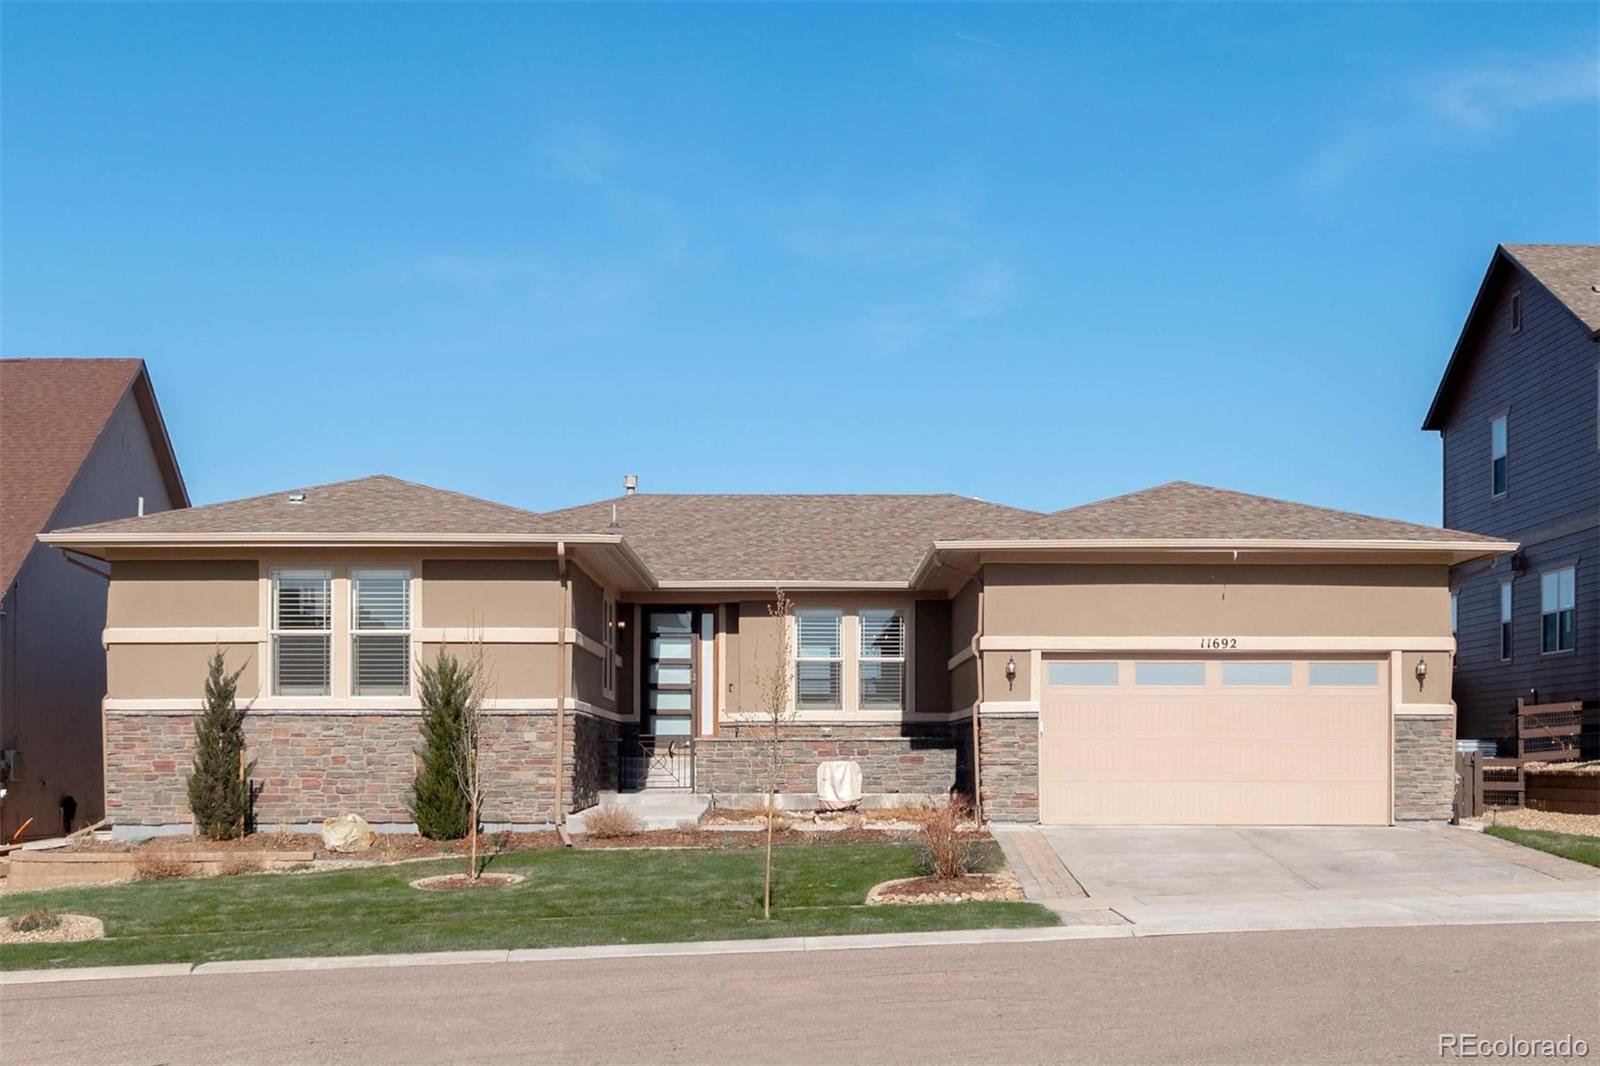 MLS# 5498200 - 2 - 11692 Spotted Street, Parker, CO 80134